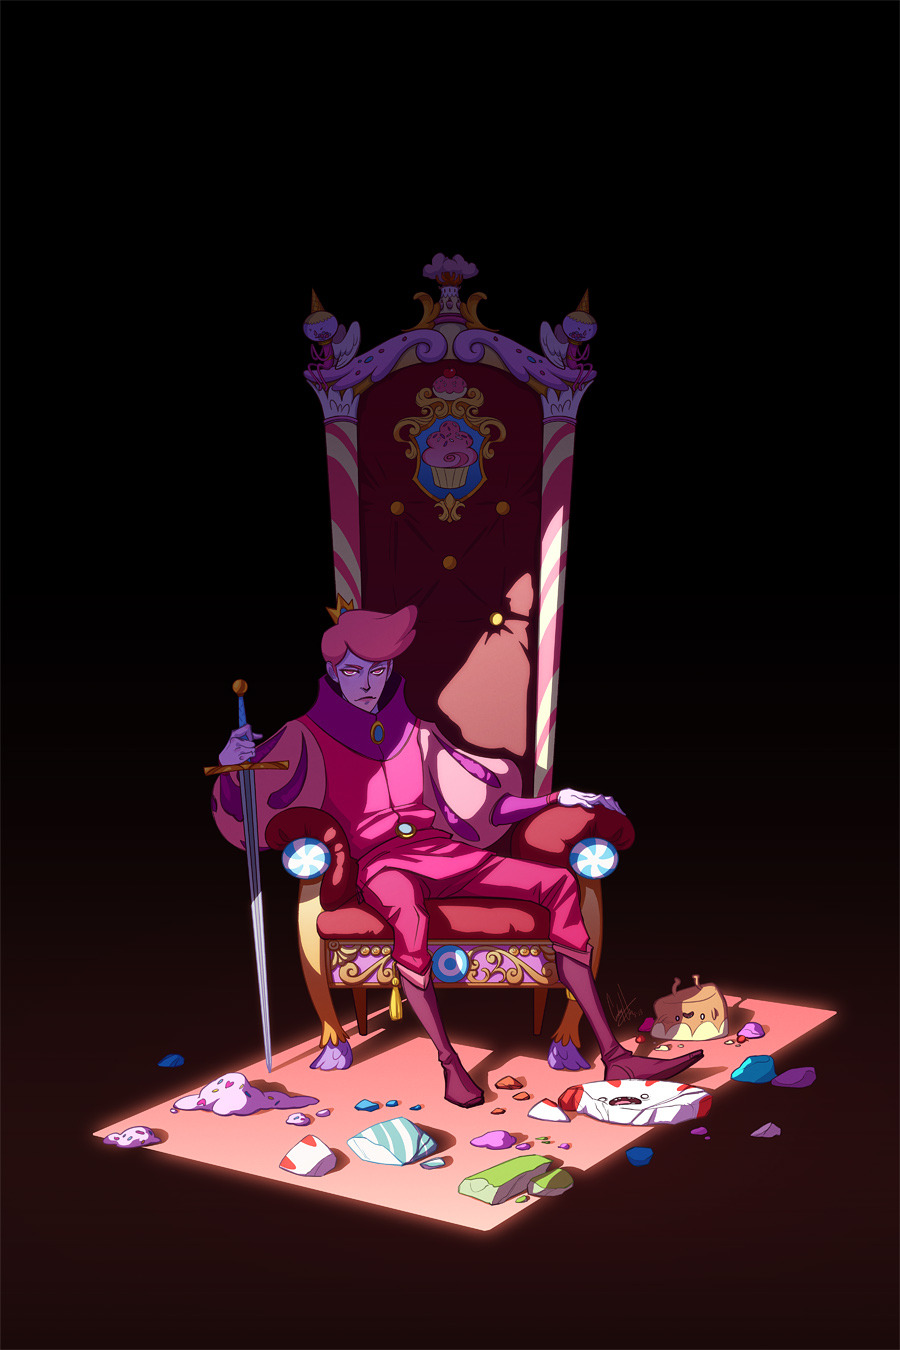 stegolibrium:  kisskicker:  Prince Gumball's path to the throne was brutal. Fionna wasn't around during the Sugar Wars; Gumball distracts her by acting super bland and wearing disco pants. Marshall Lee knows the truth, but as Chaotic Neutral, he just can't bring himself to give a shit. ETA: Nhyworks just gave me the amazing pun 'Game of Scones.' Brb dying ok.  Awwww yis.  This pleases me greatly. also game of scones omgimgone